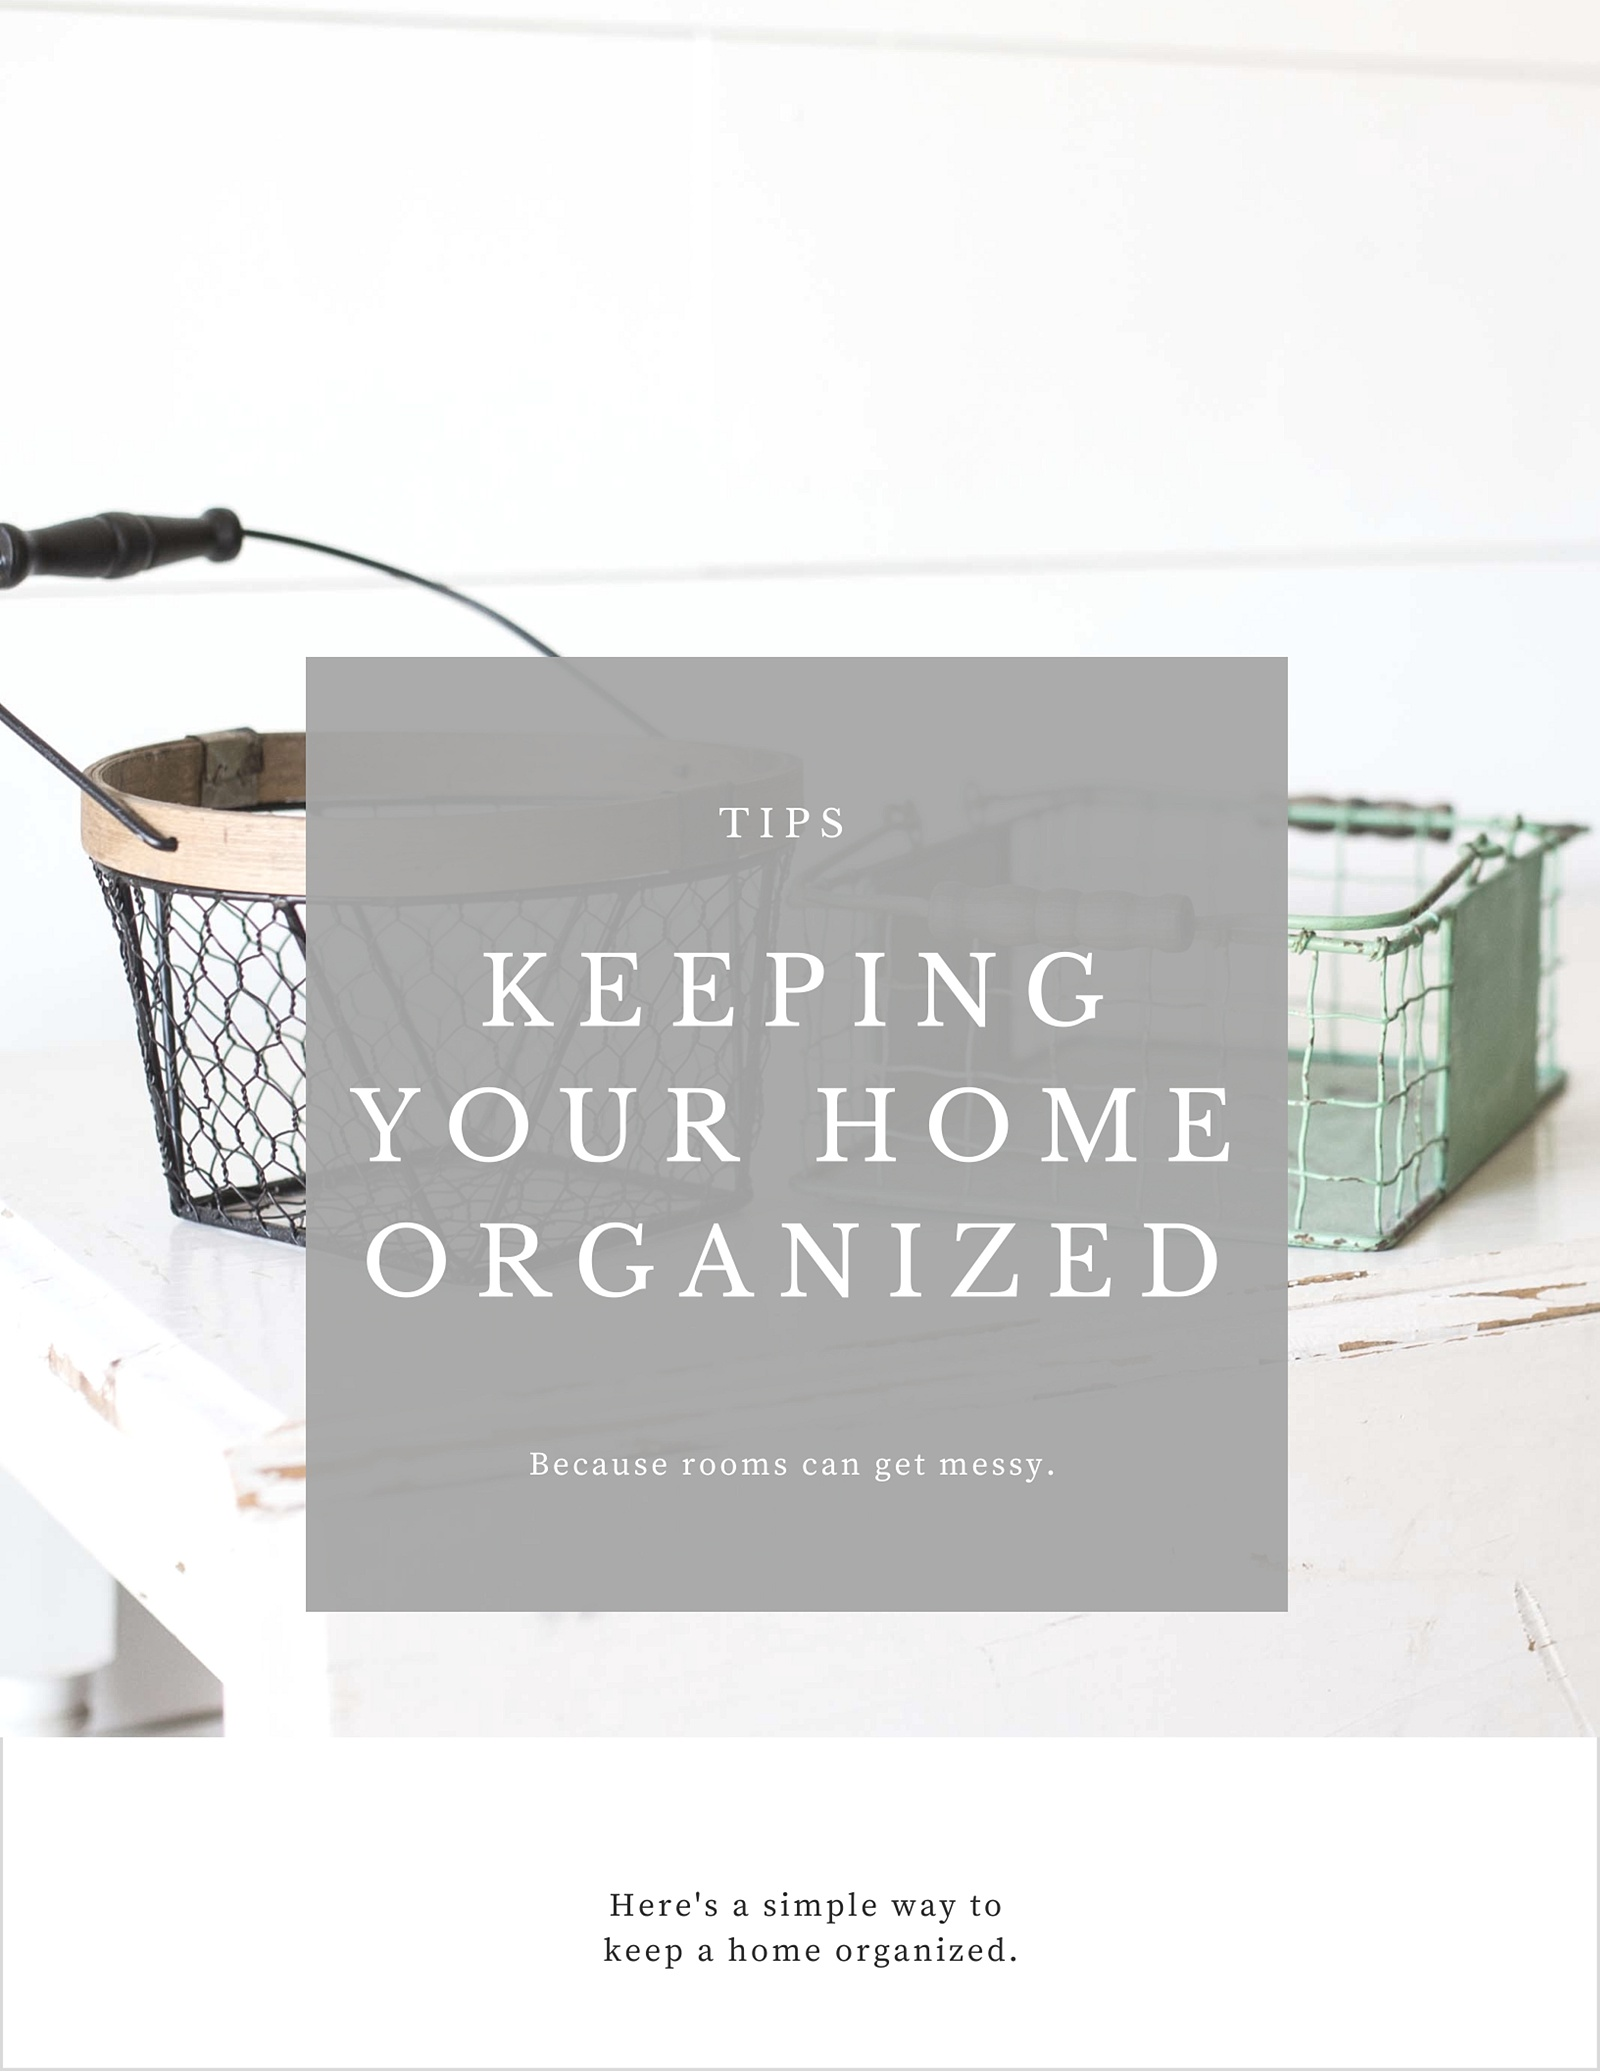 A Simple Way to Keep Your Home Organized